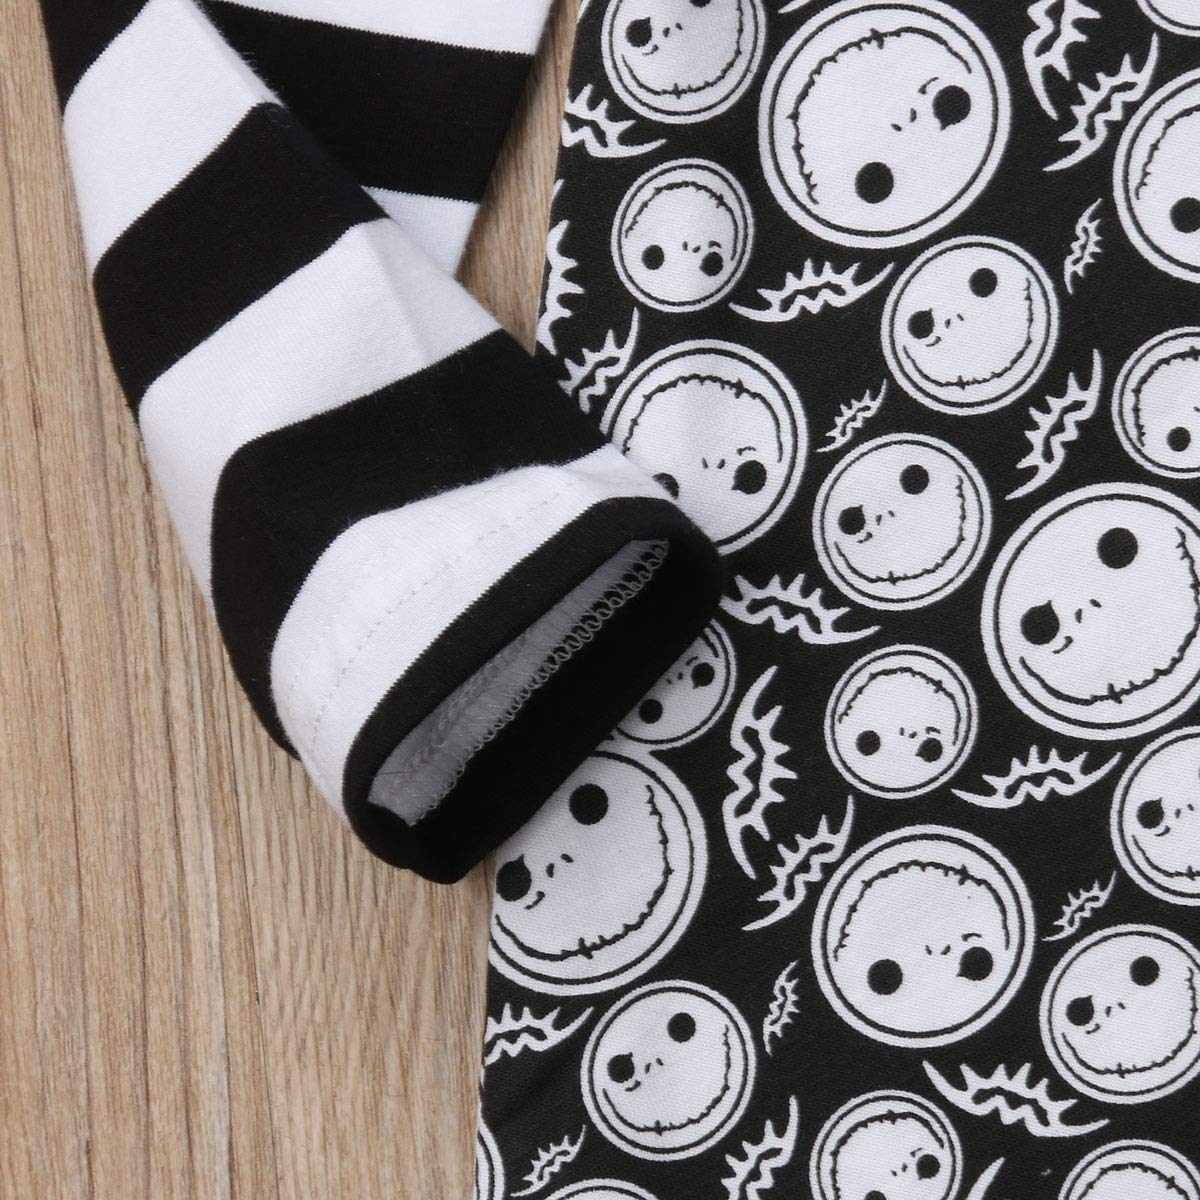 Newborn Infant Baby Girls Striped Long Sleeve Cartoon Bat Grimace Printed Dress